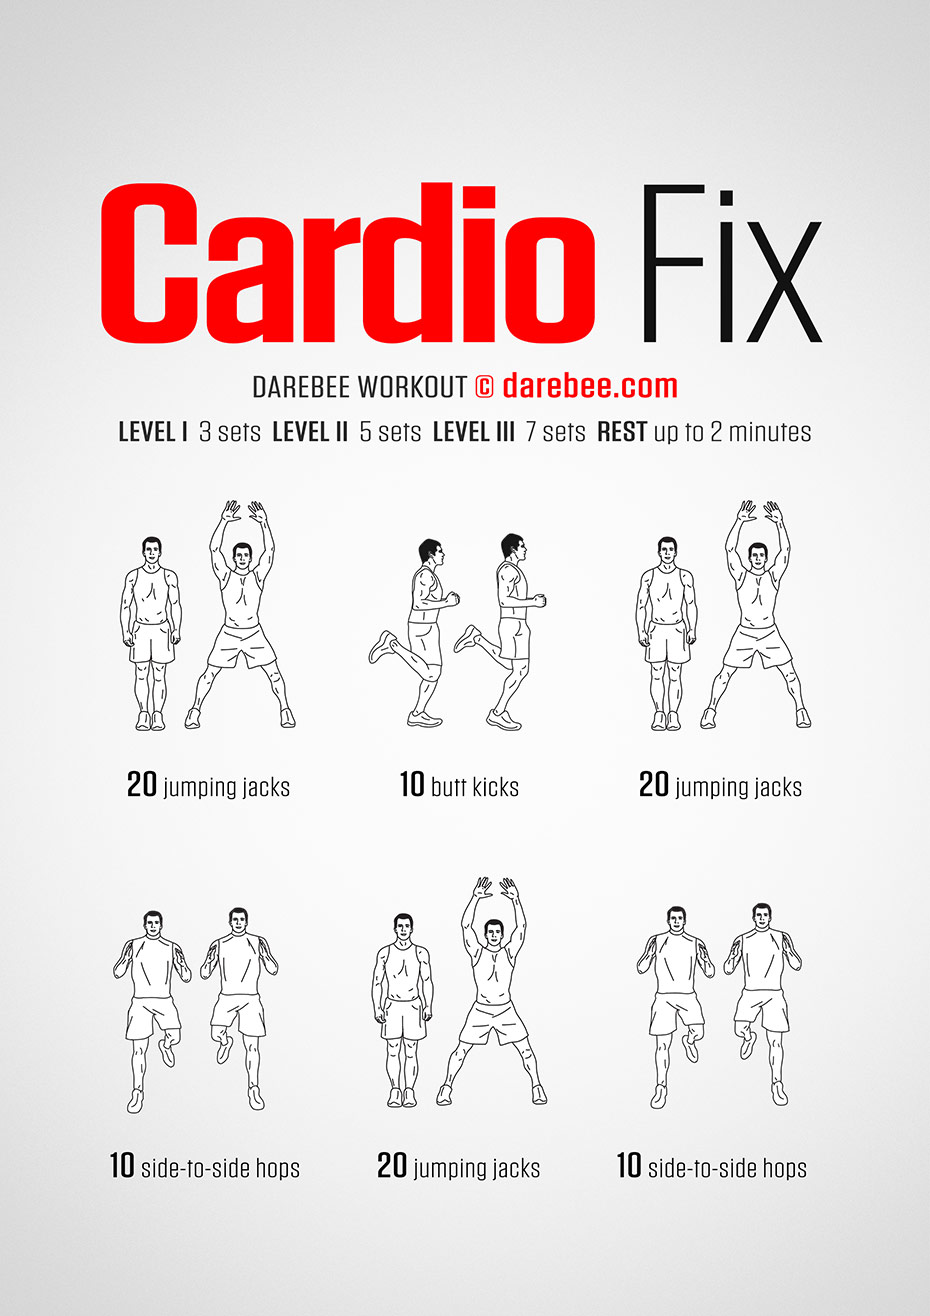 How to Cardio-Fix Your Body: The Ultimate Workout - Infographic